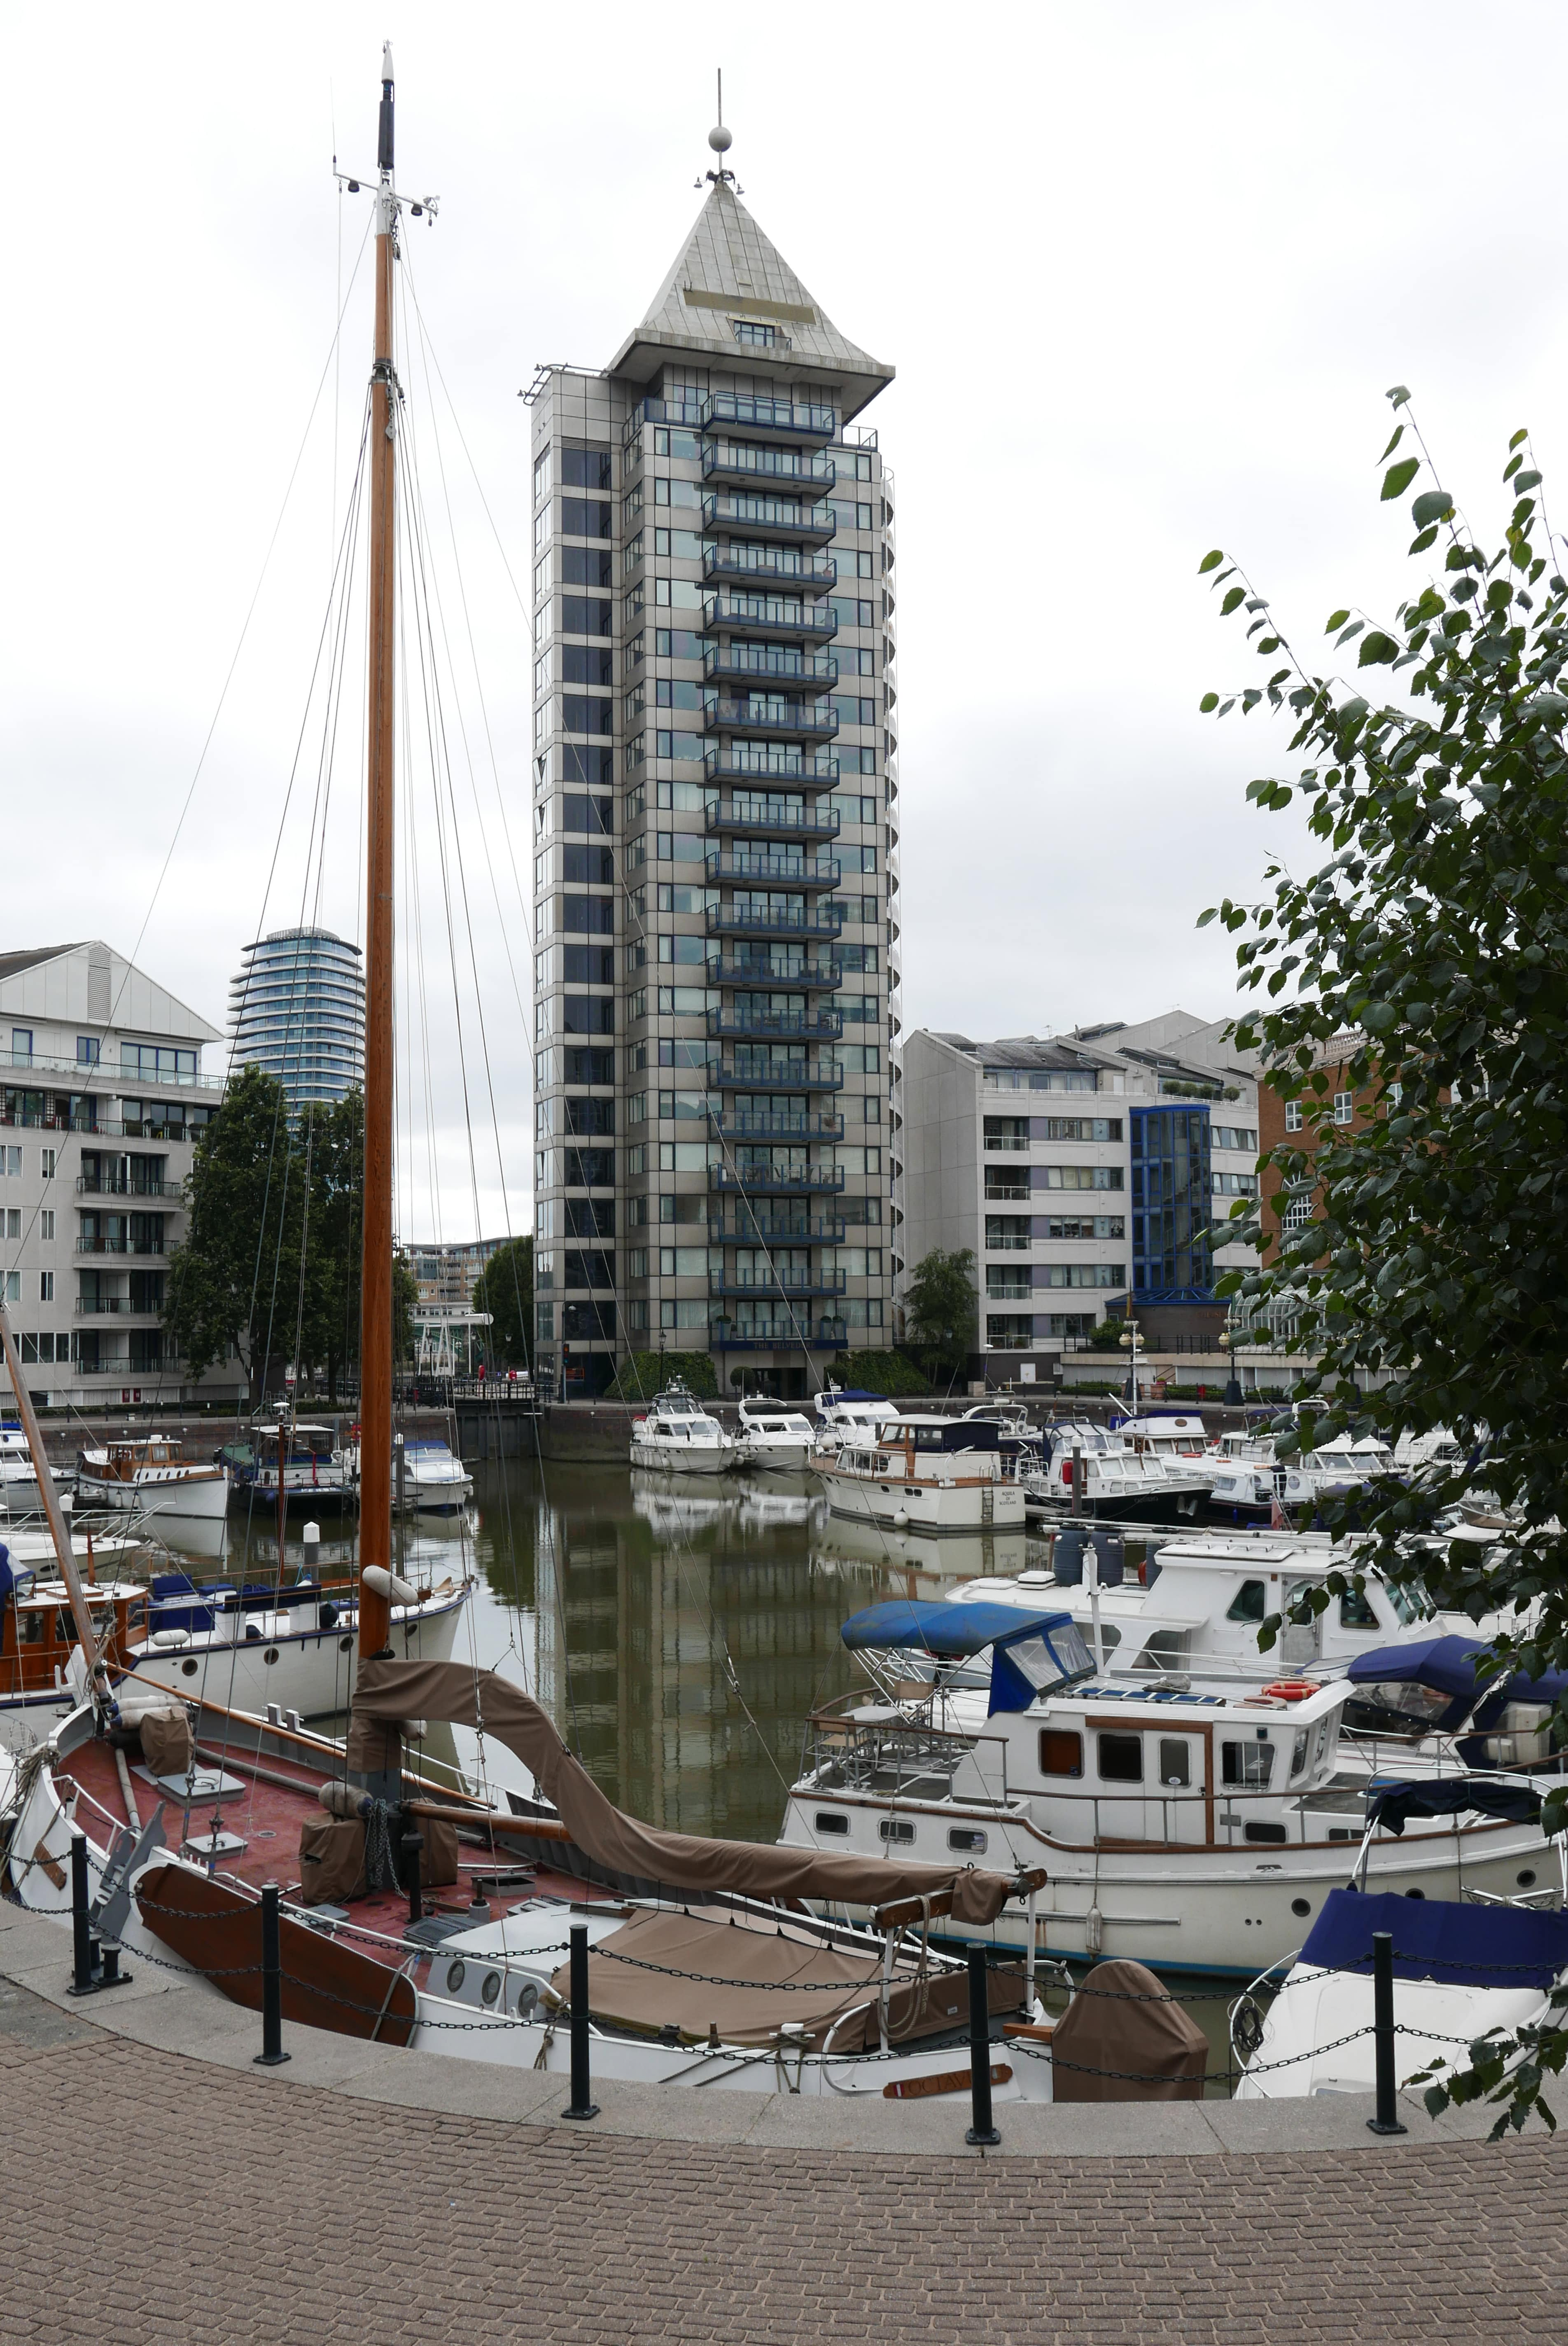 PTSG to deliver access and safety services at luxury Chelsea apartments